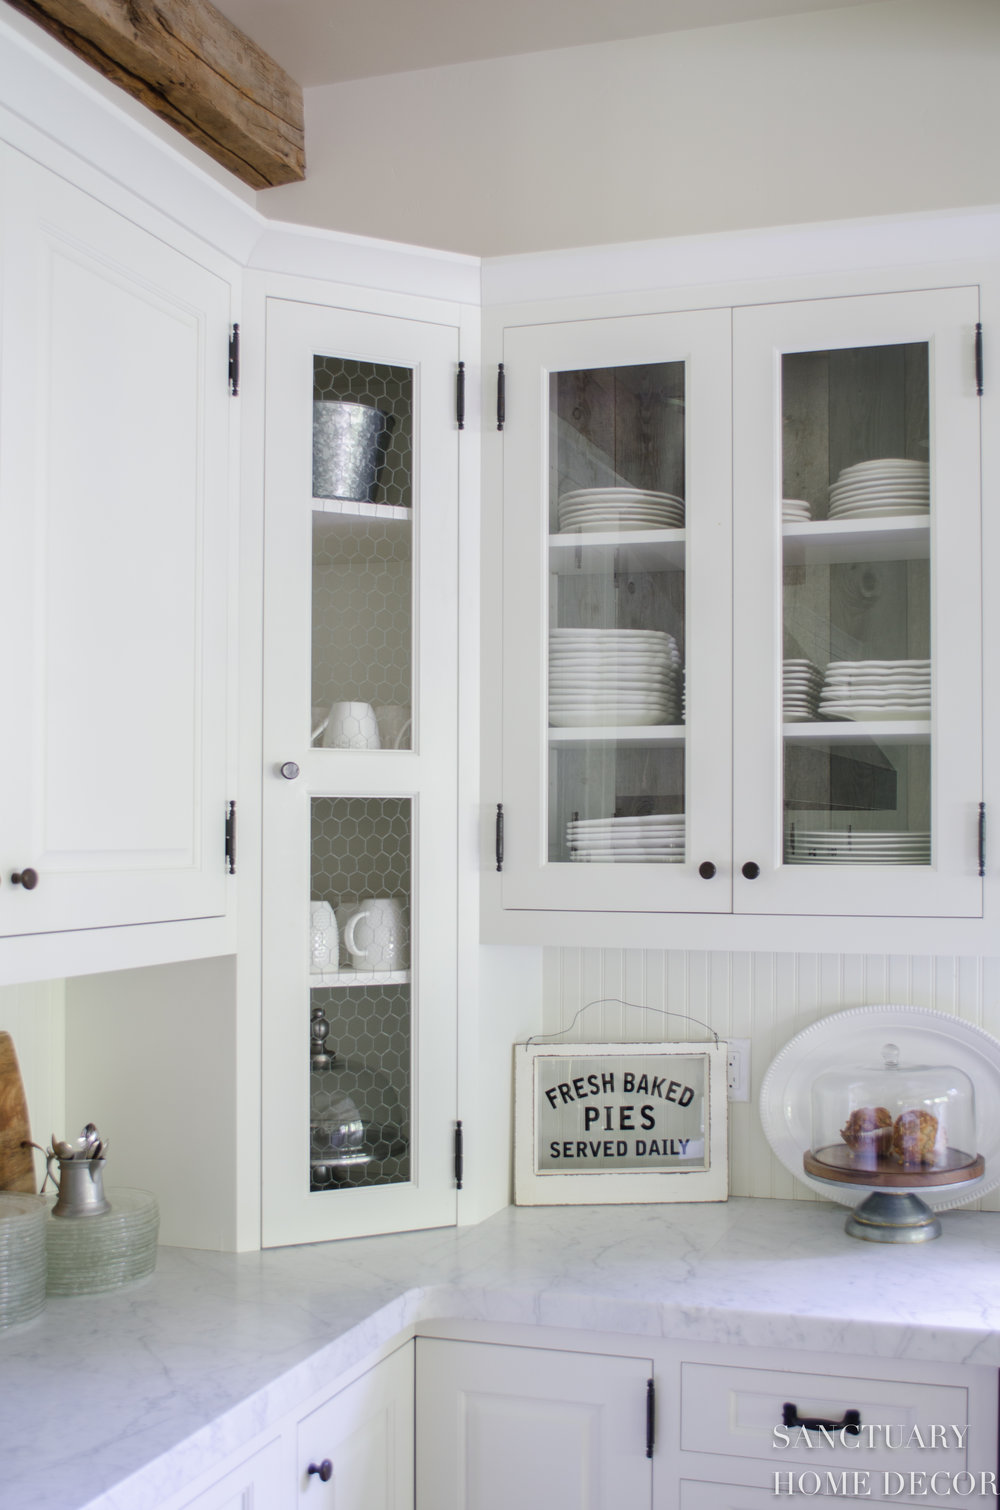 All White Dishes inside  Glass Cabinets at the Ranch